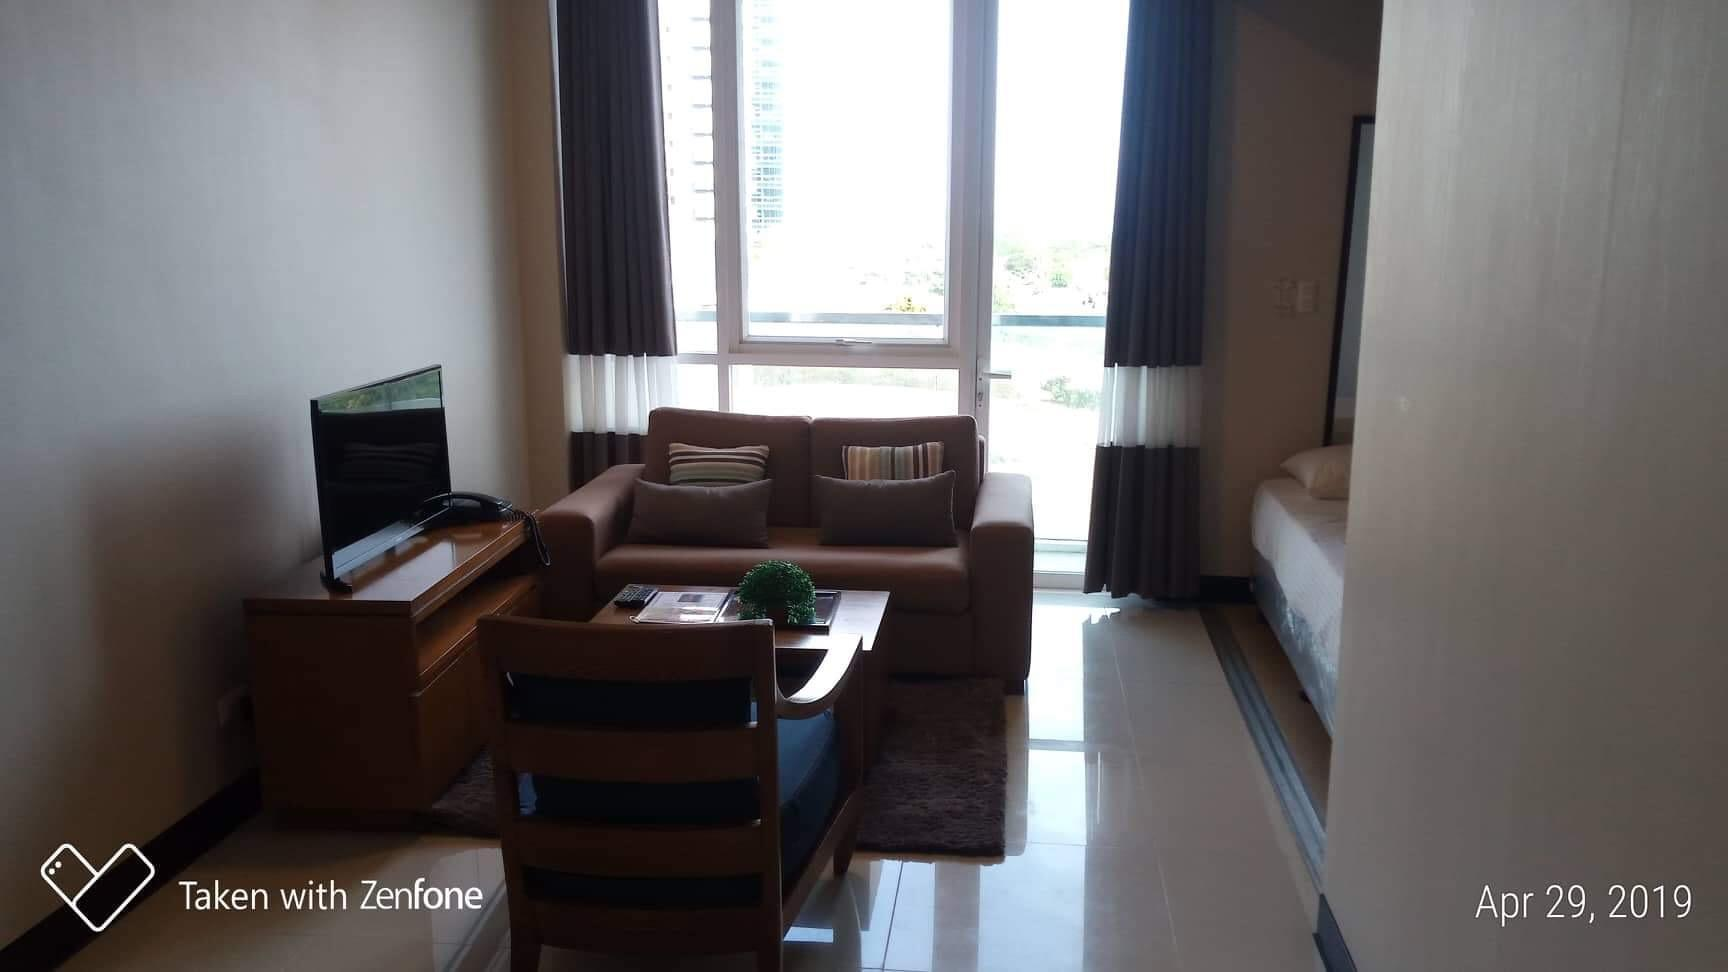 81 Monthly Residence Simple stay